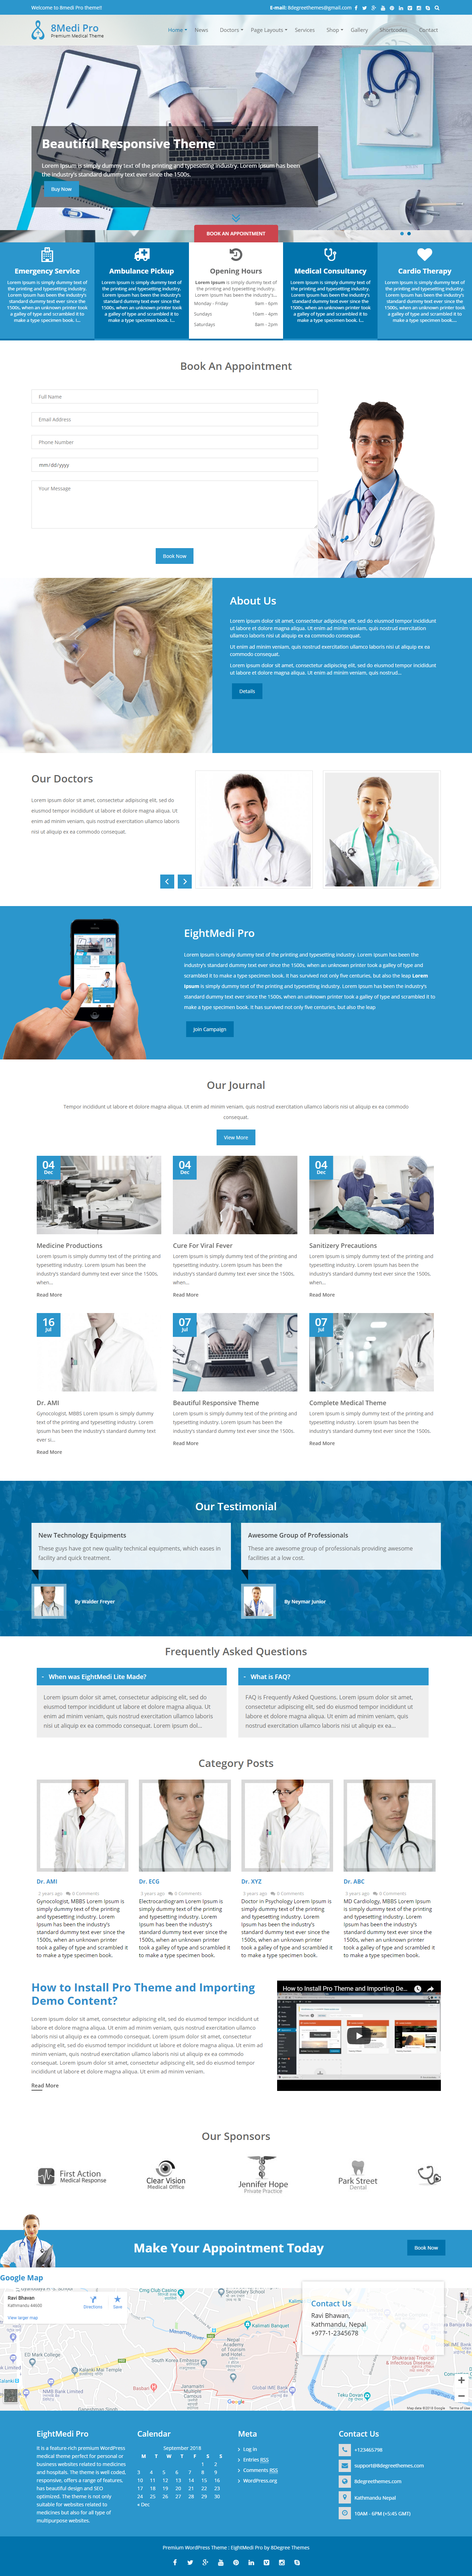 Eightmedia Pro - Best Premium hospital WordPress Theme